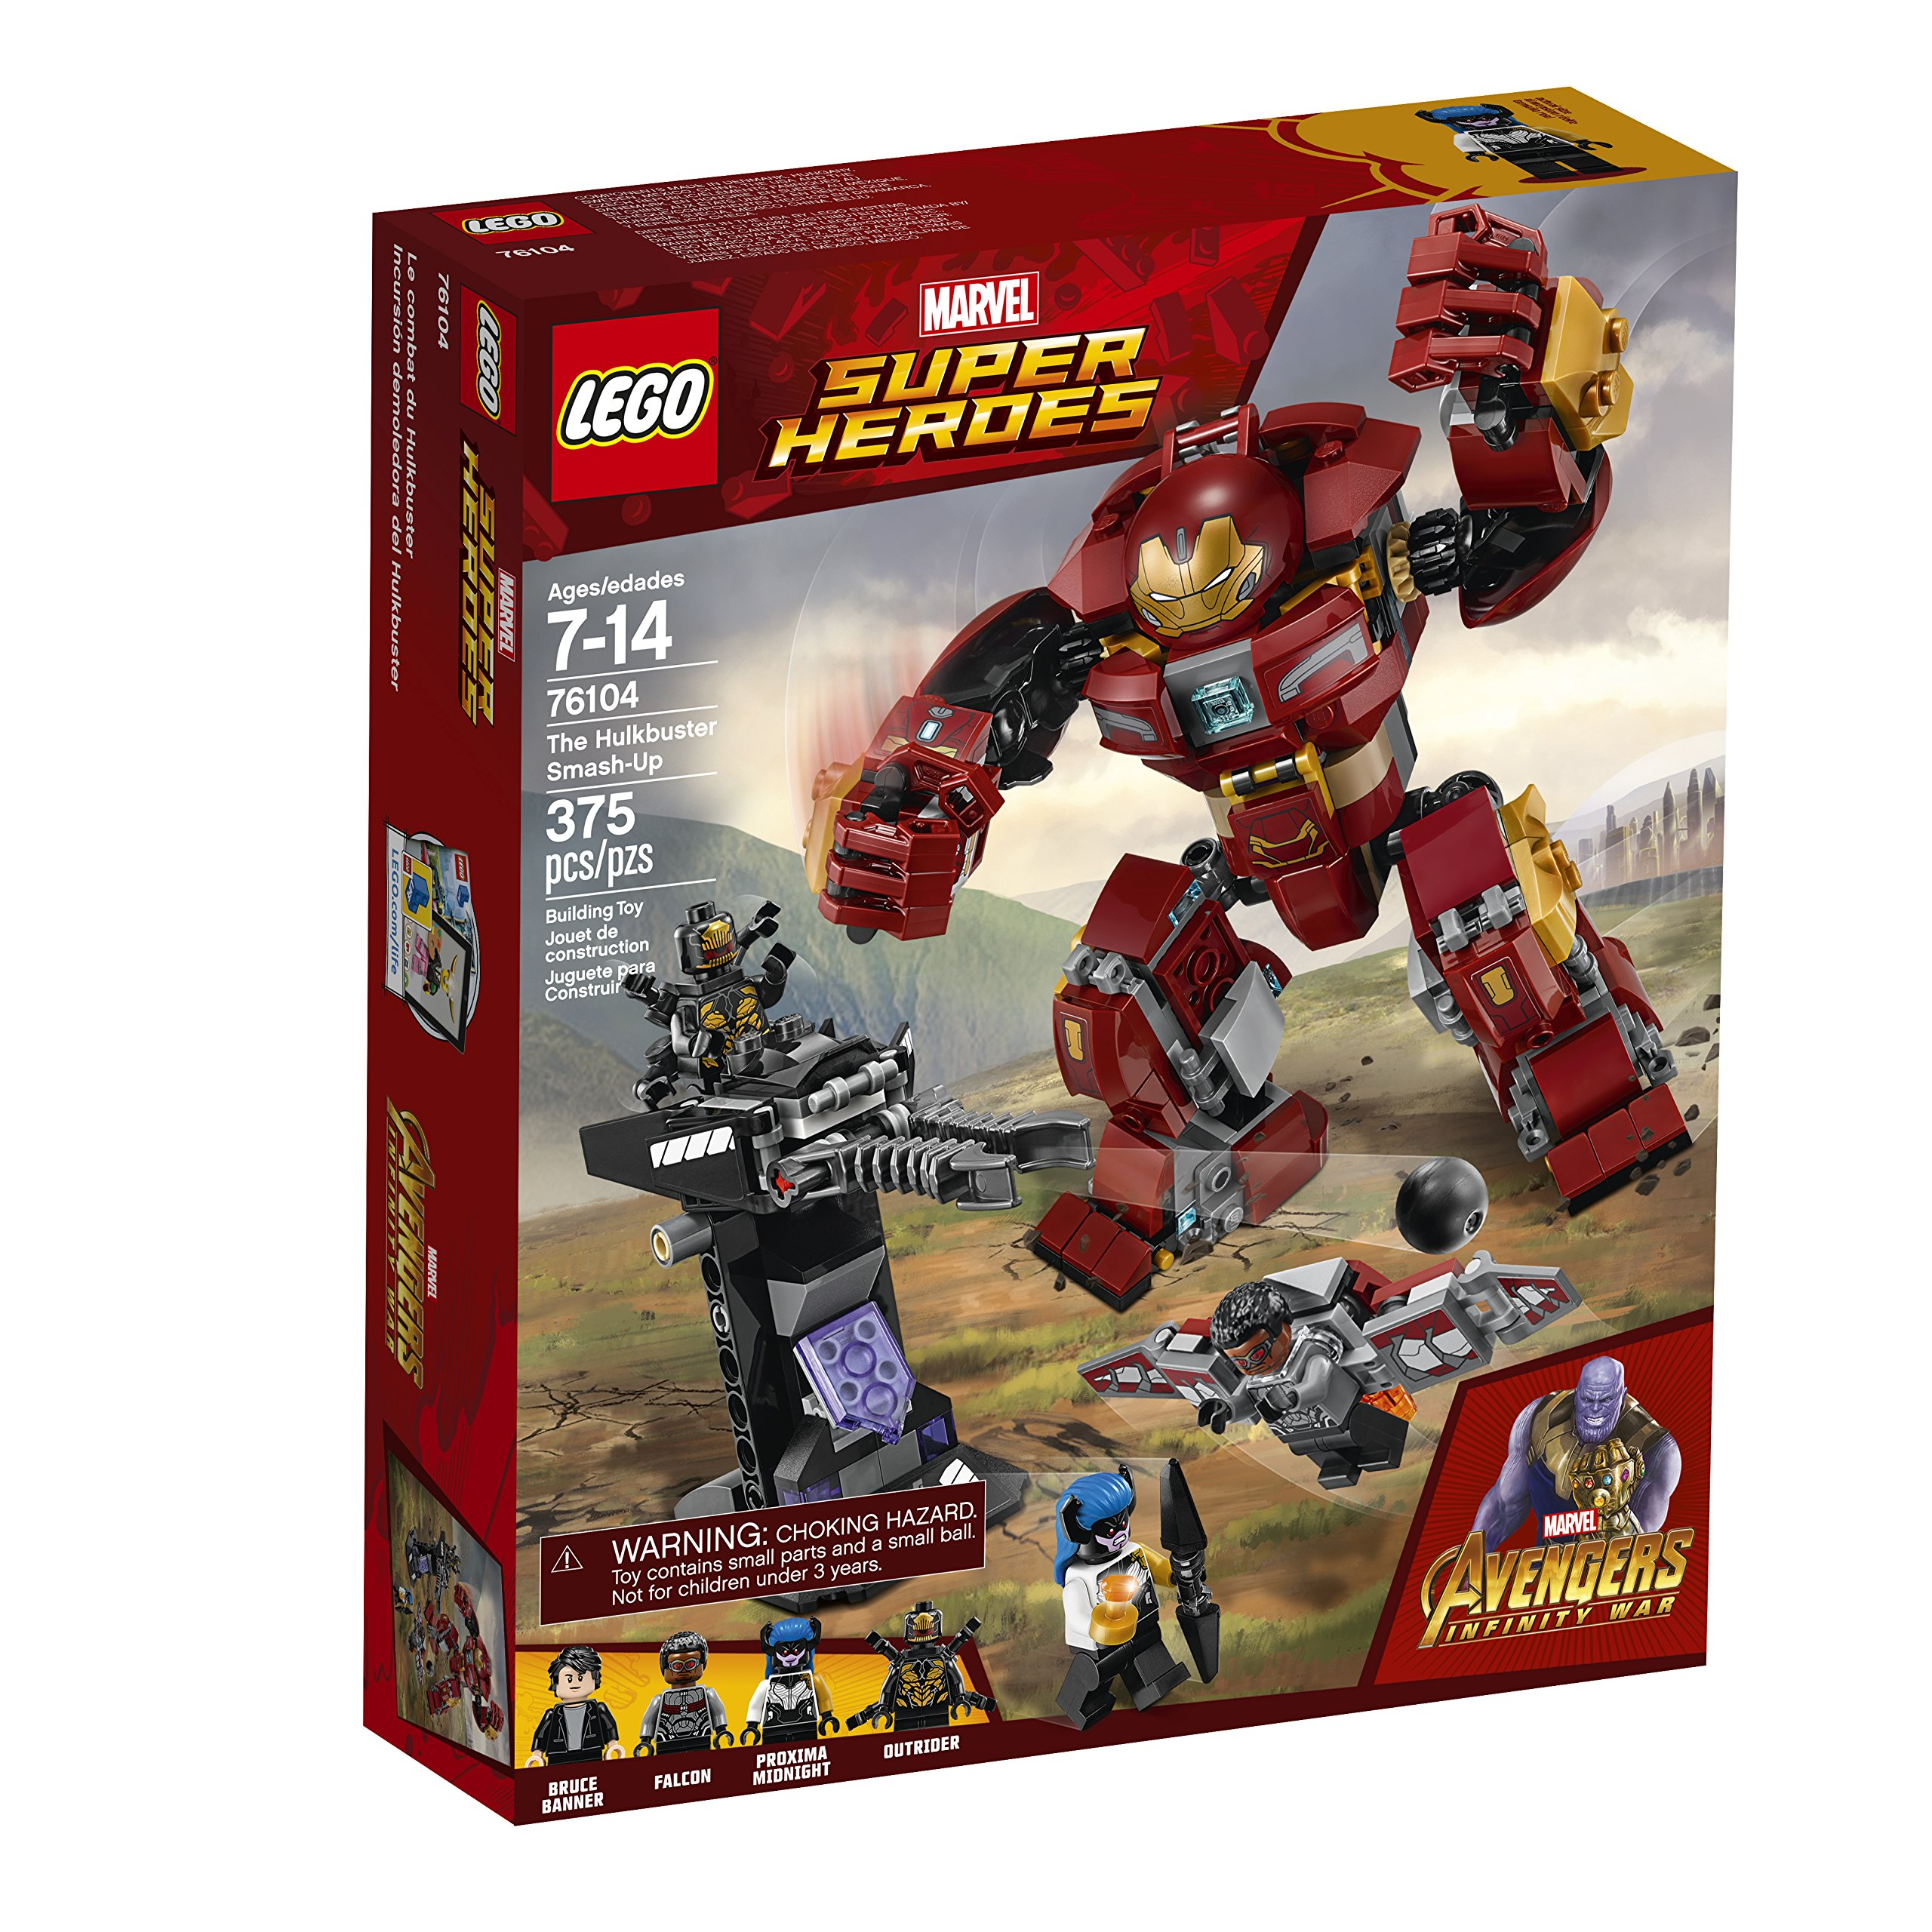 LEGO Marvel Super Heroes Avengers: Infinity War The Hulkbuster Smash-Up 76104 Building Kit (375 Piece) by LEGO (Image #8)